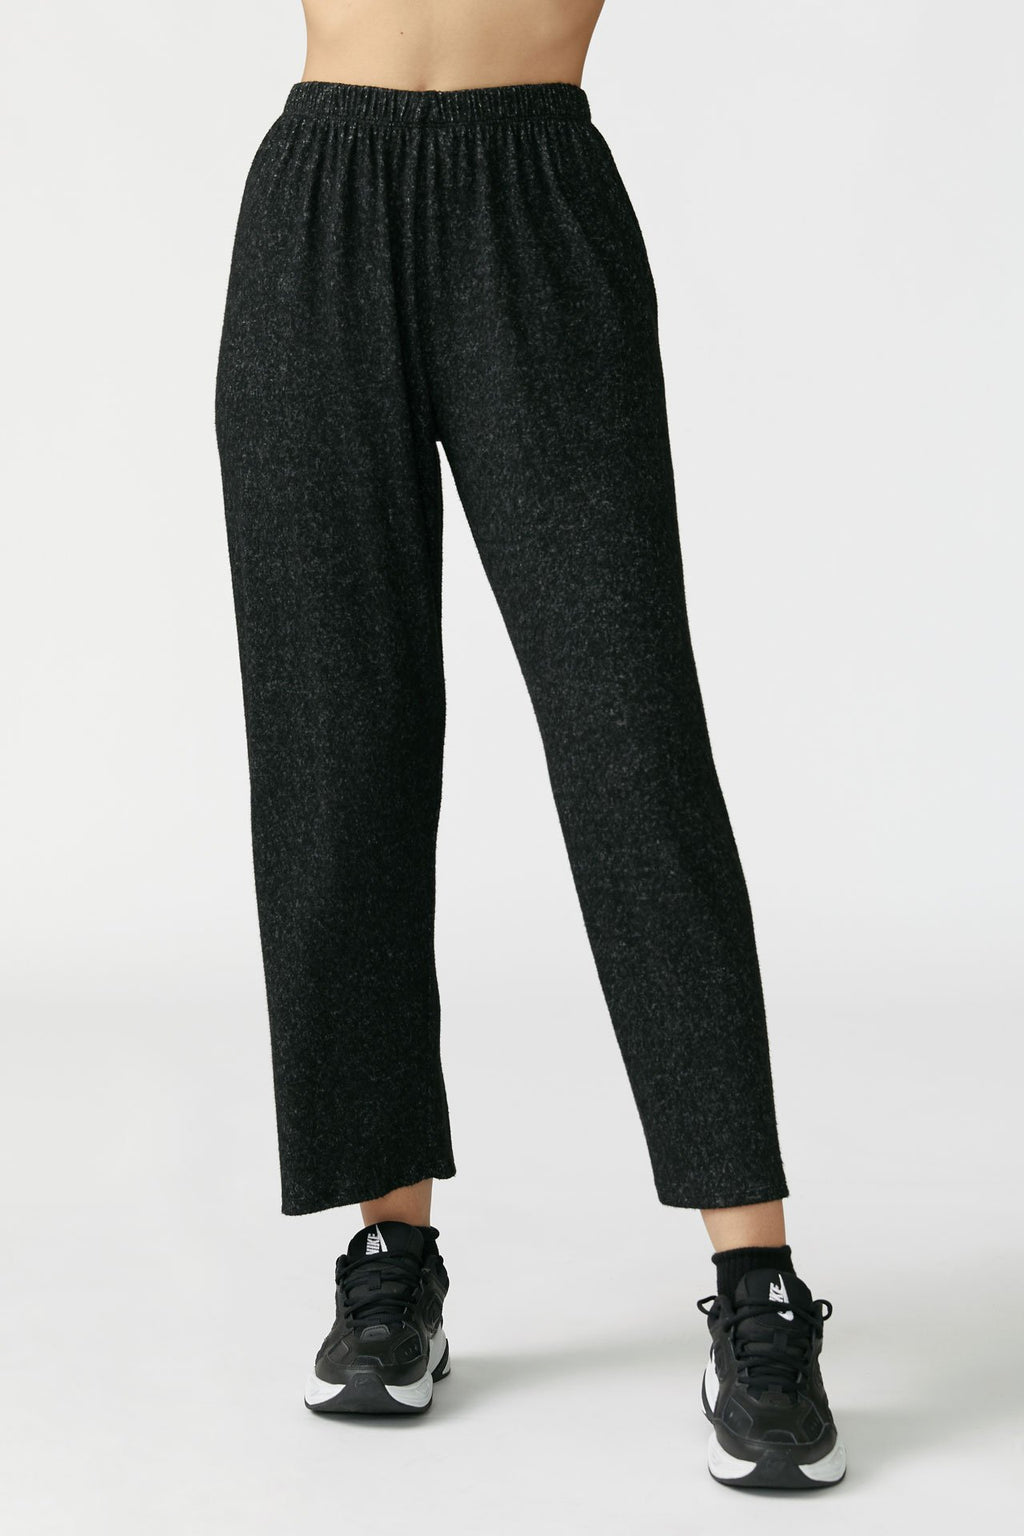 Joah Brown Zeppelin Pant